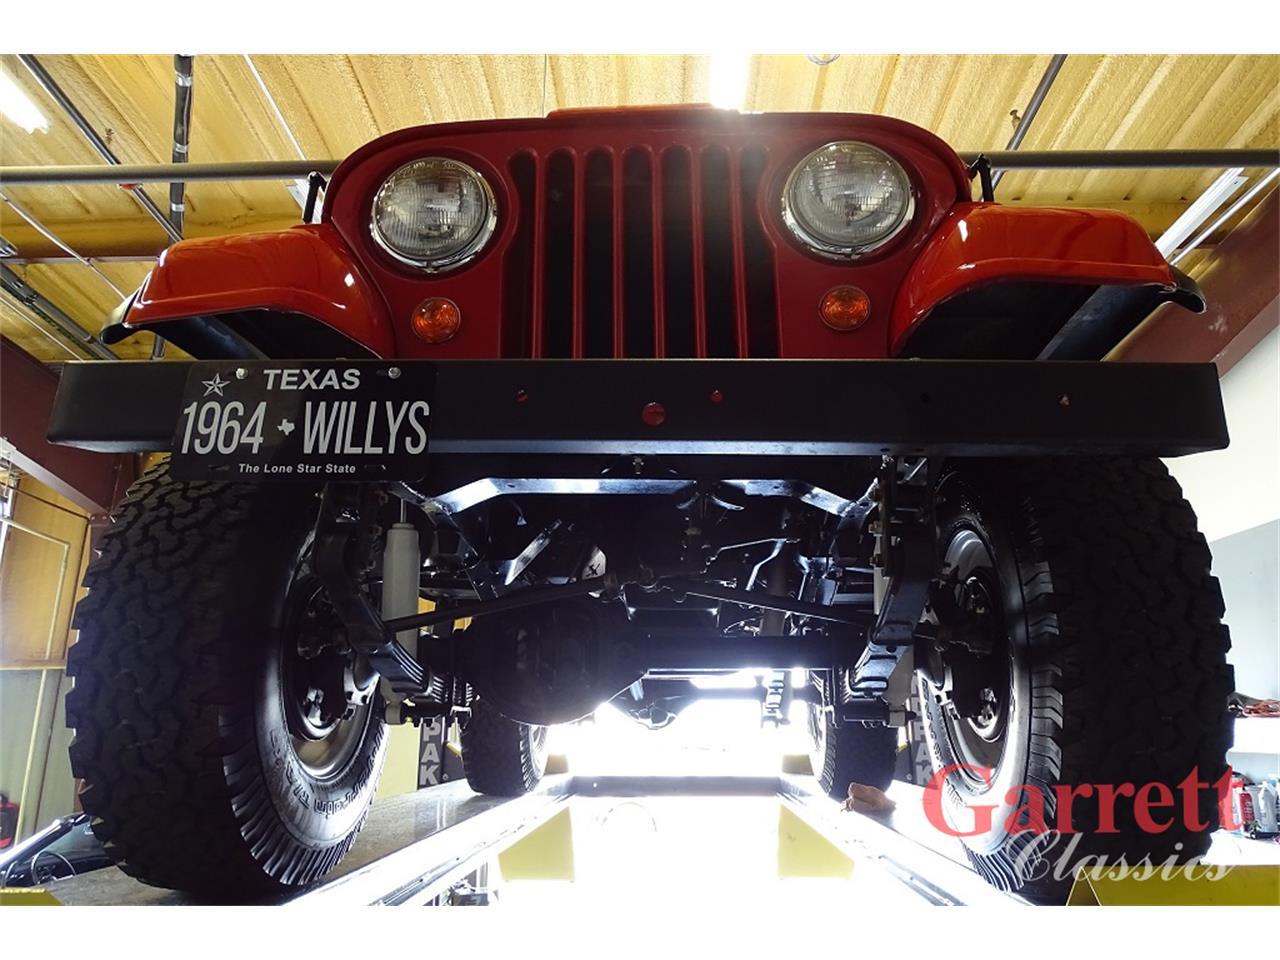 Large Picture of Classic 1964 Jeep located in TEXAS (TX) - $16,500.00 - Q4KI